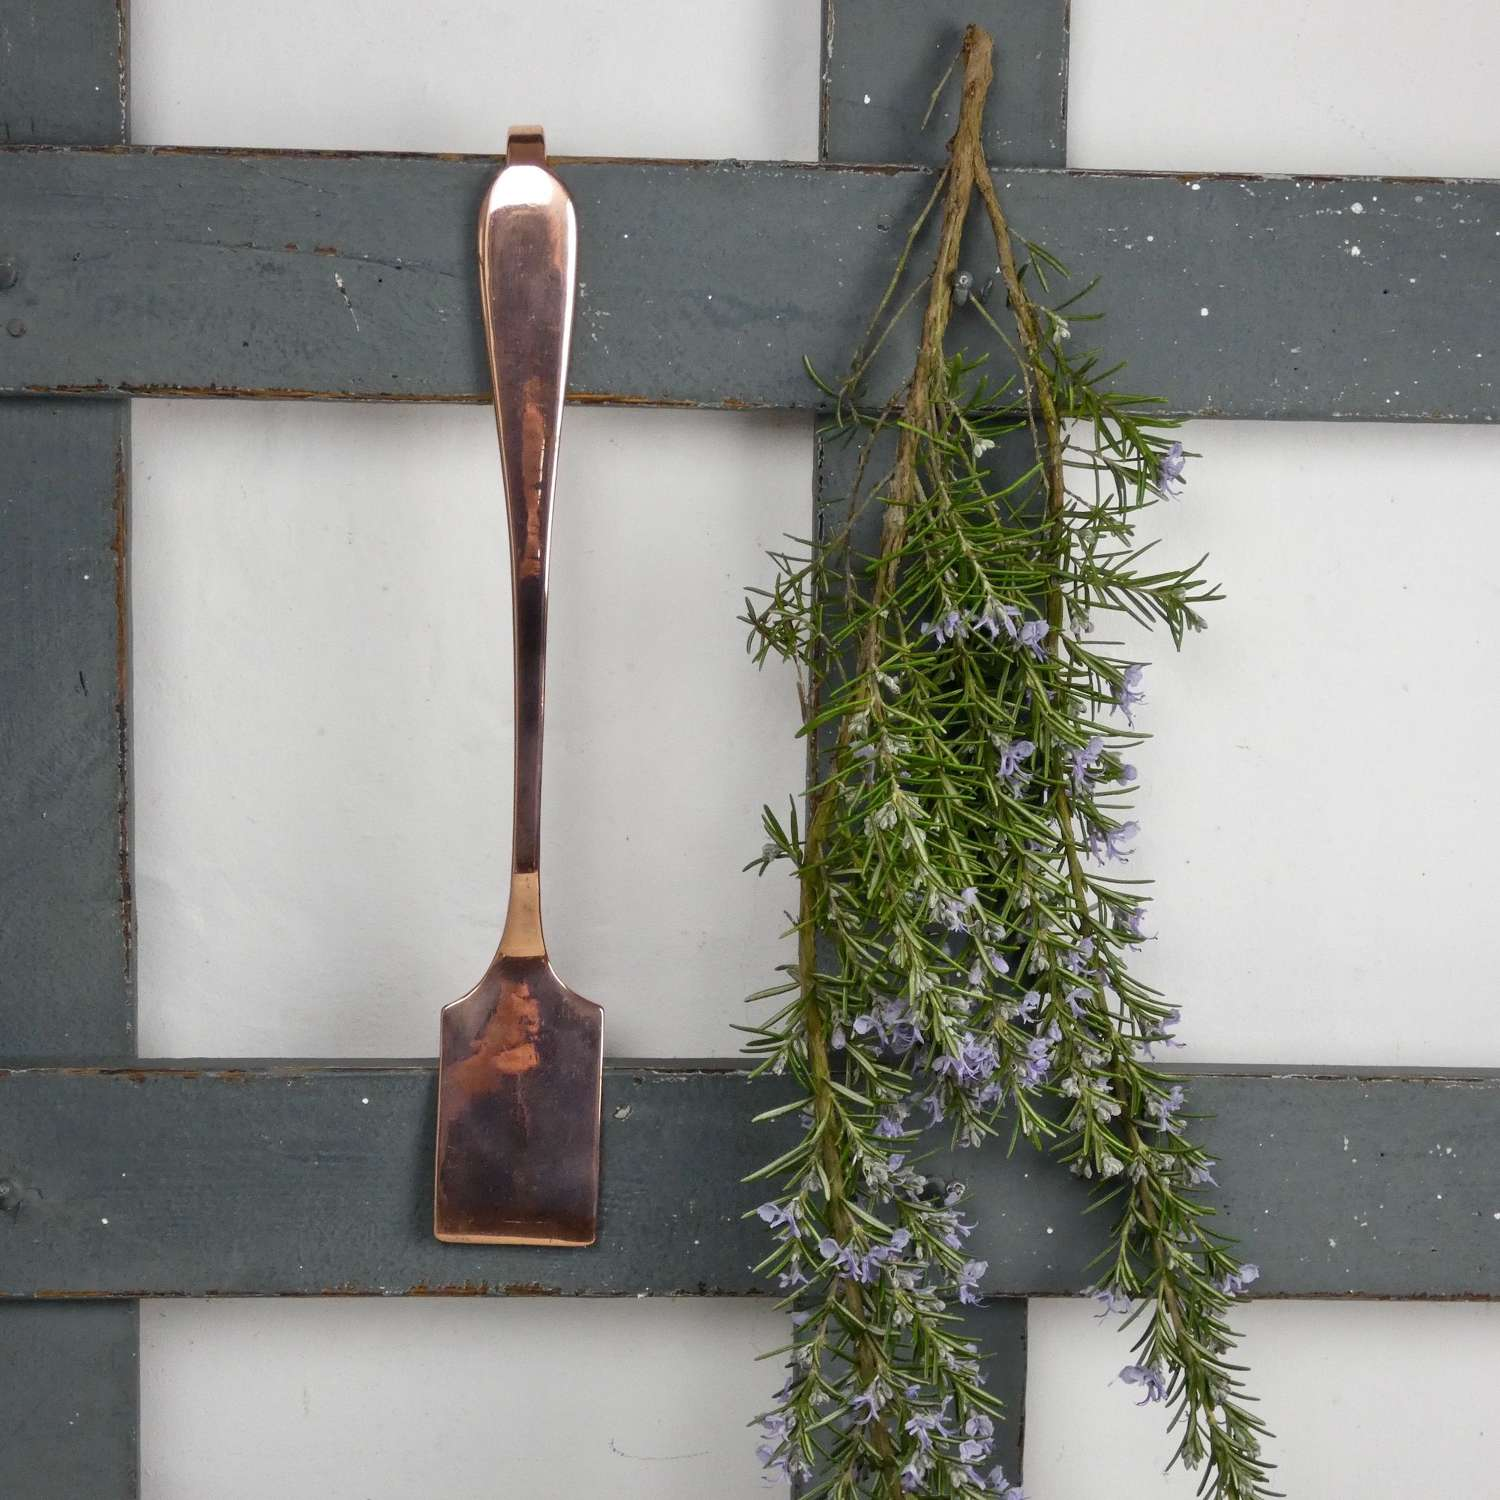 English copper spatula